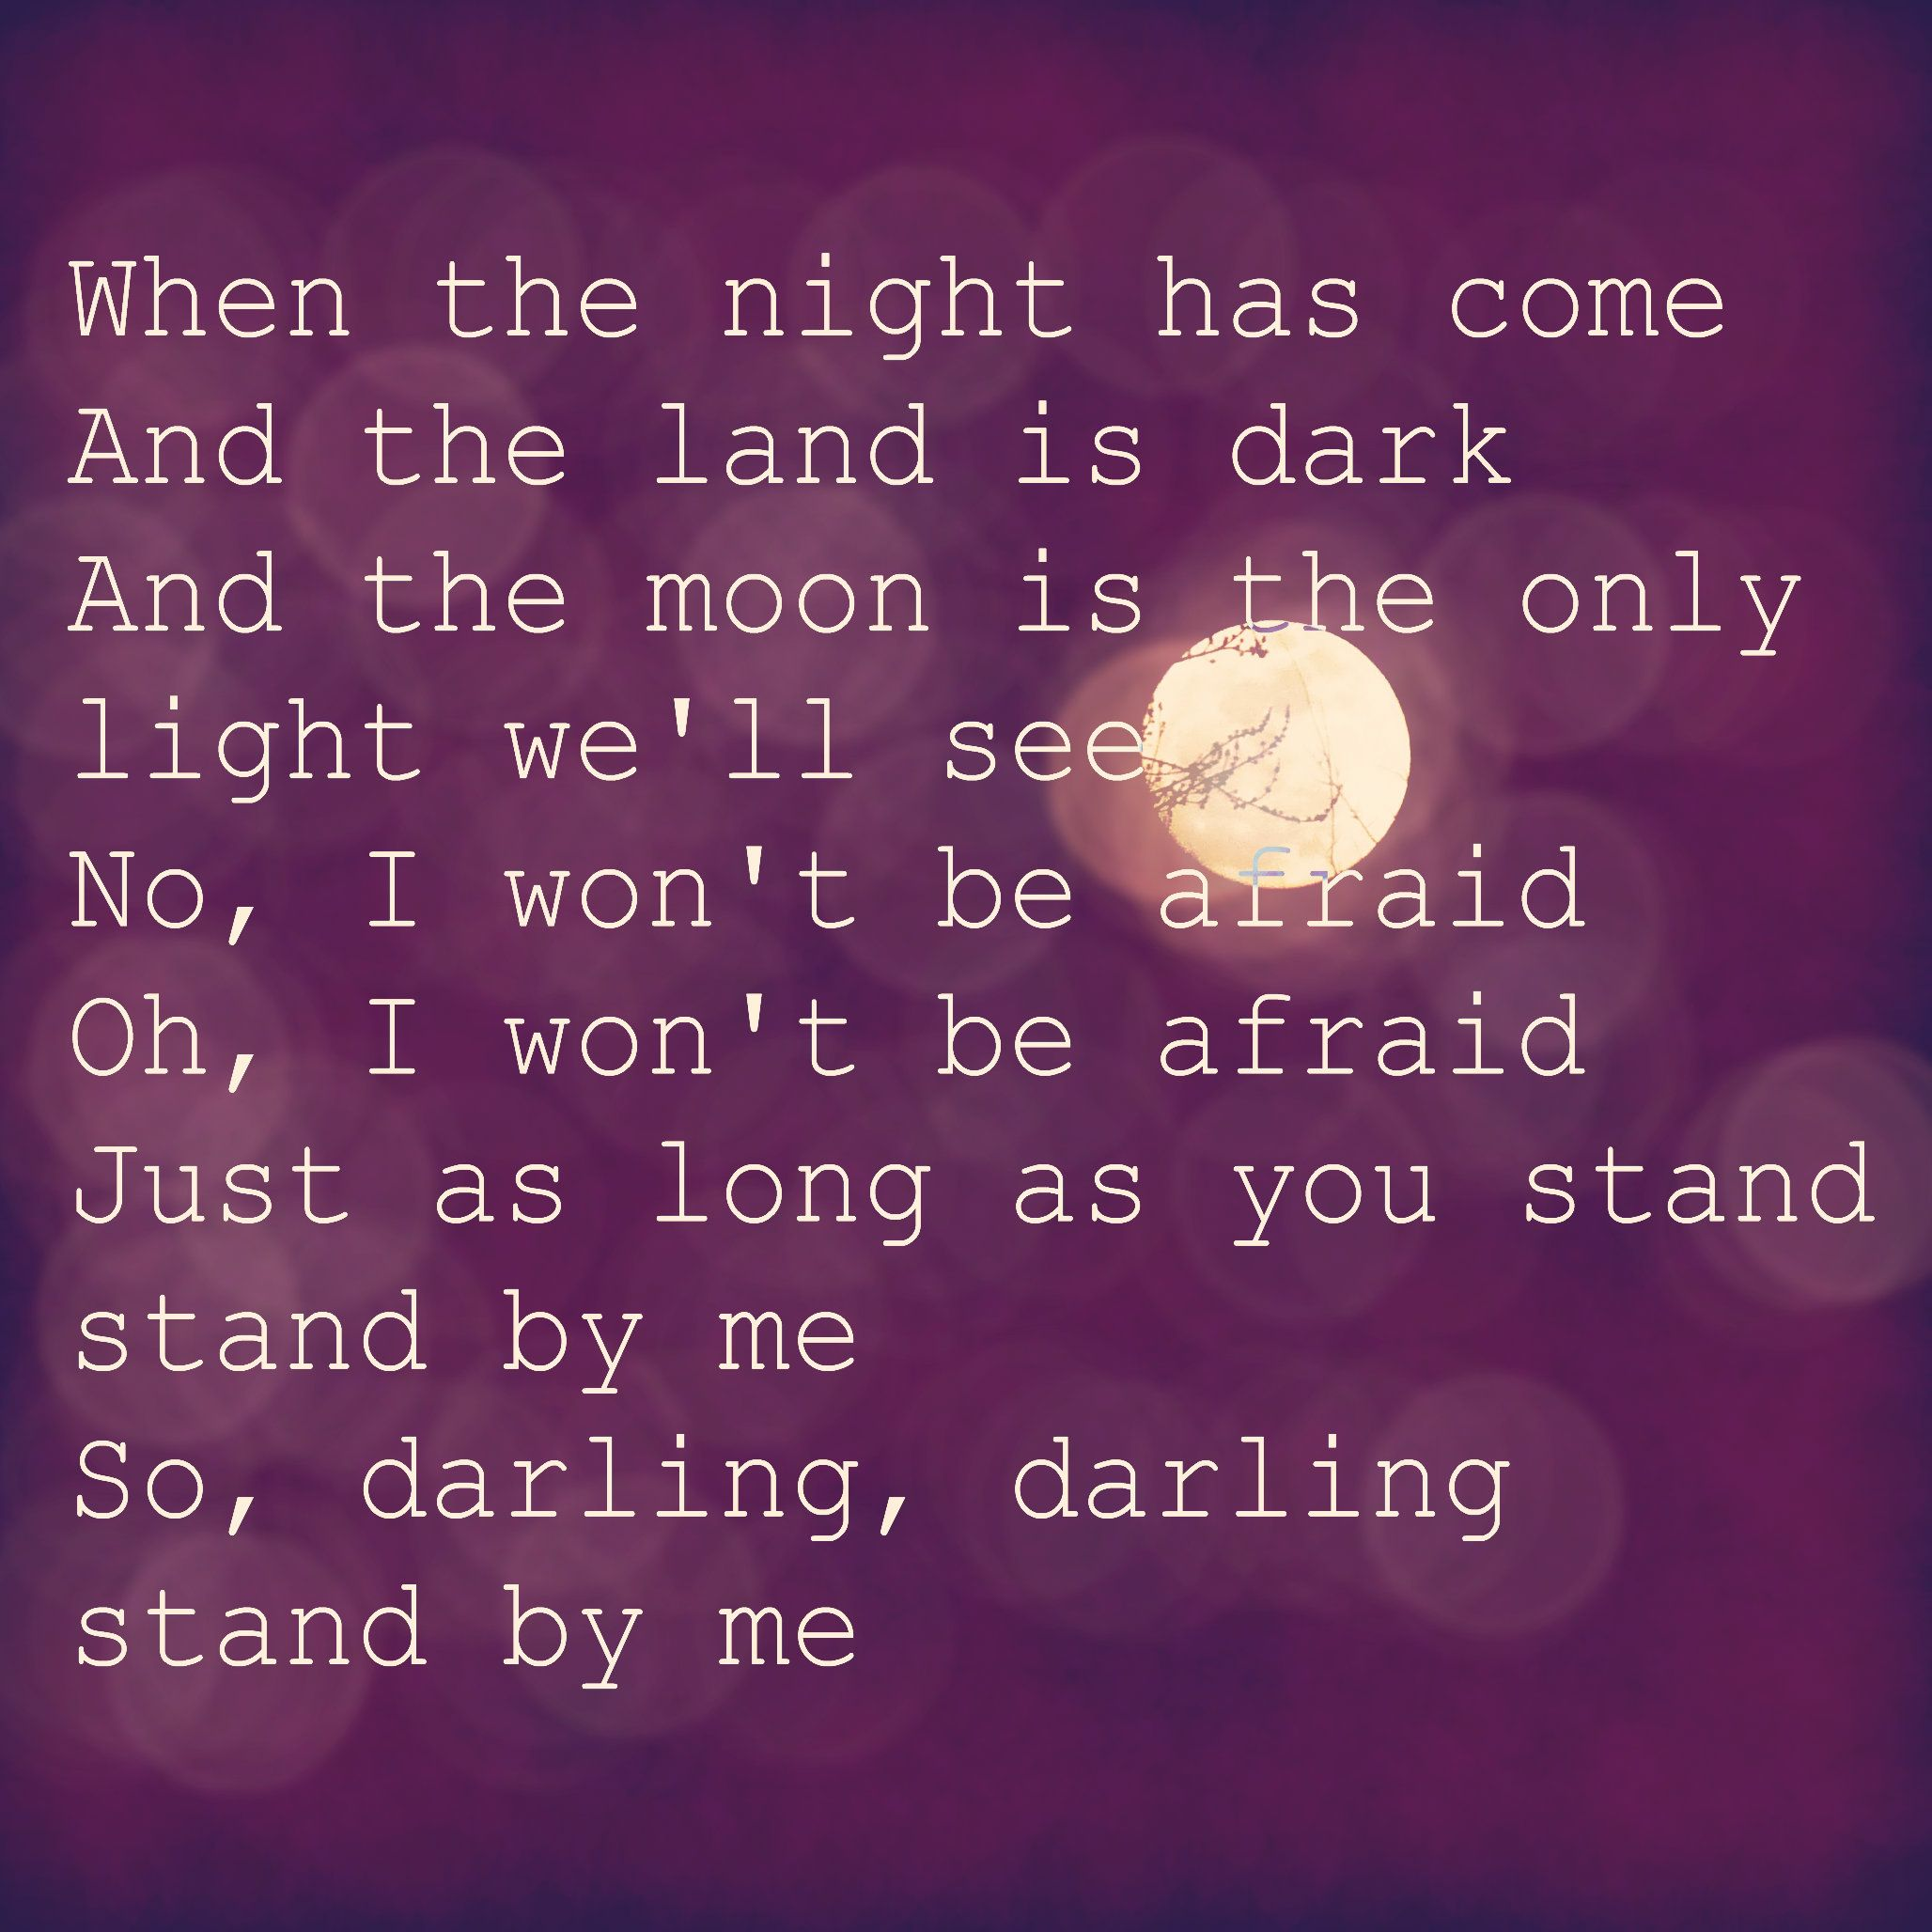 BEN E. KING - STAND BY ME (STAND BY ME) LYRICS